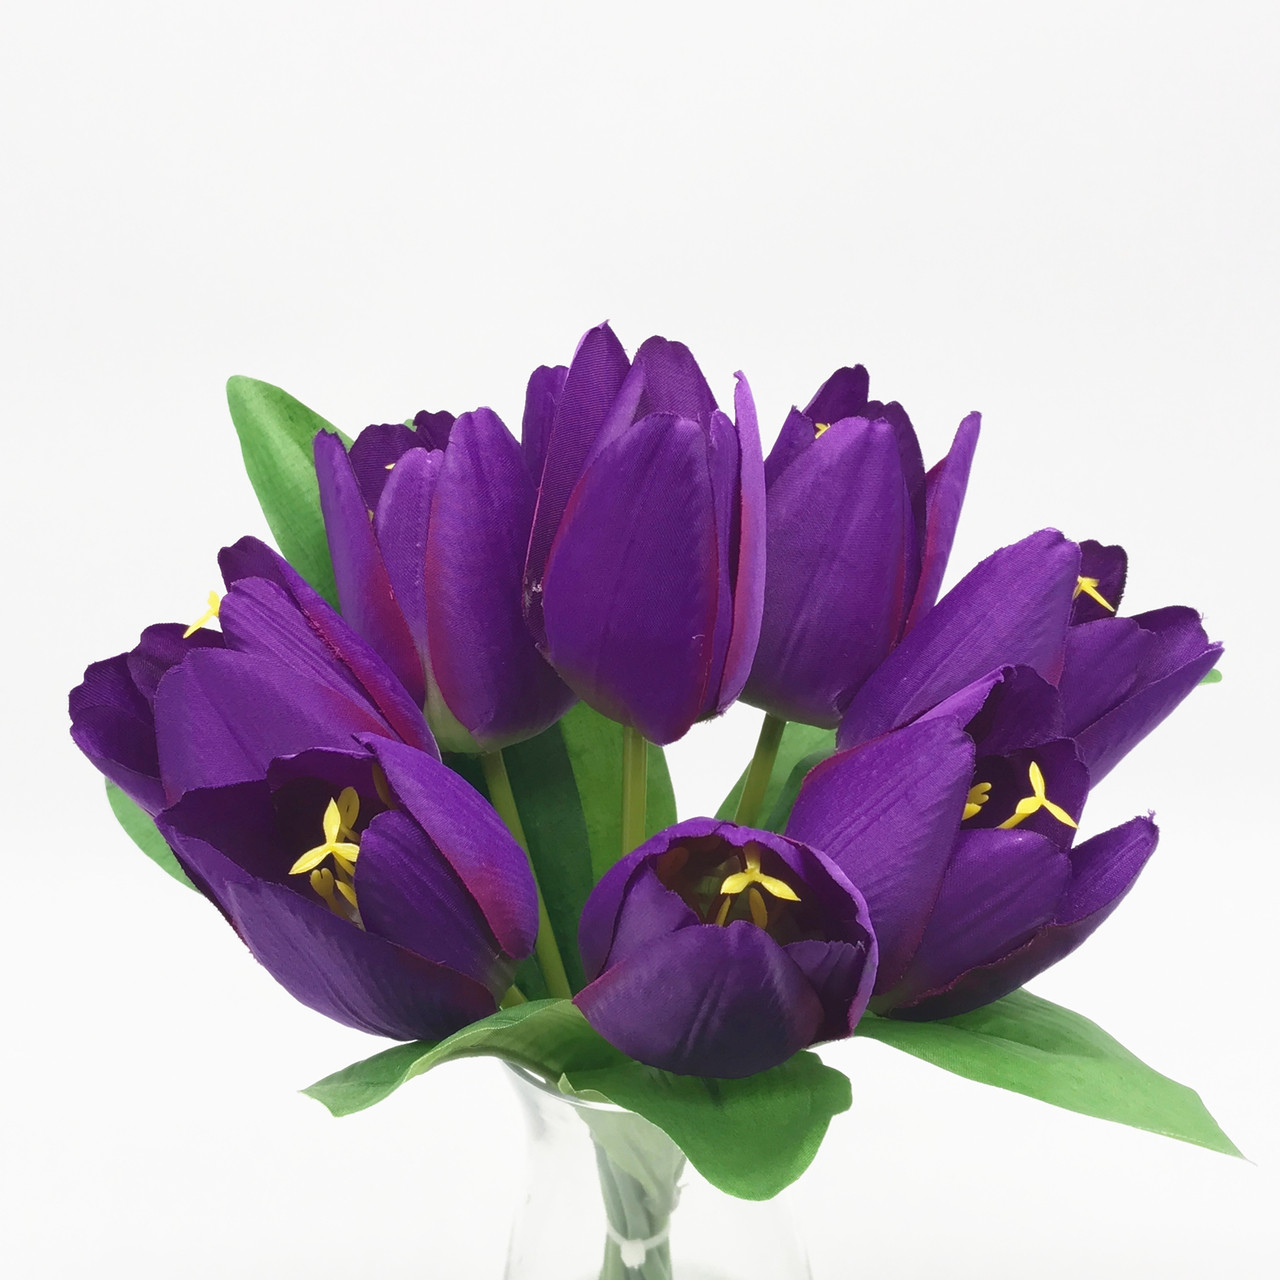 Cool Purple Silk Tulips Centerpiece In Clear Glass Vase With Faux Water Download Free Architecture Designs Intelgarnamadebymaigaardcom